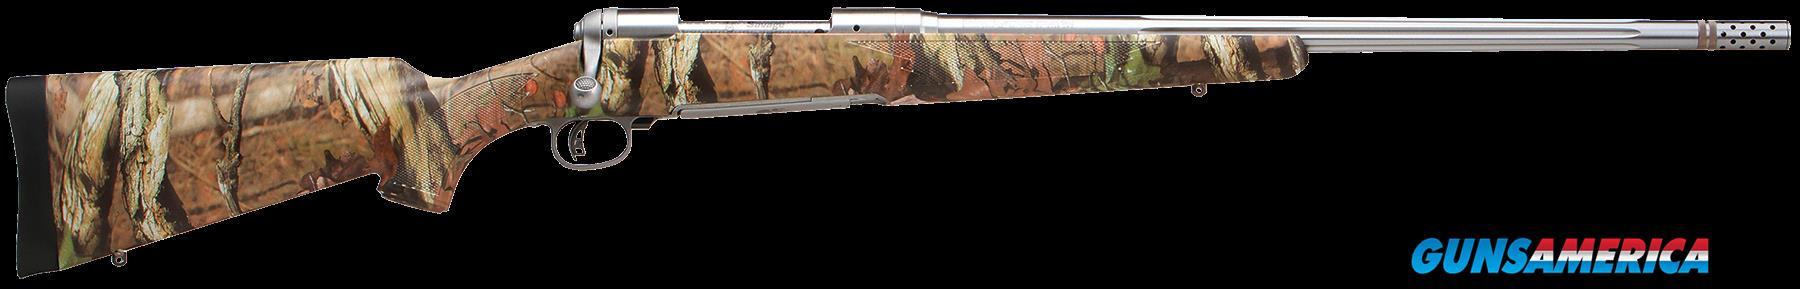 "Savage 19639 16/116 Bear Hunter Bolt 375 Ruger 23"" 3+1 Accustock Mossy Oak Break-Up Infinity Stk  Guns > Rifles > Savage Rifles > Standard Bolt Action > Sporting"